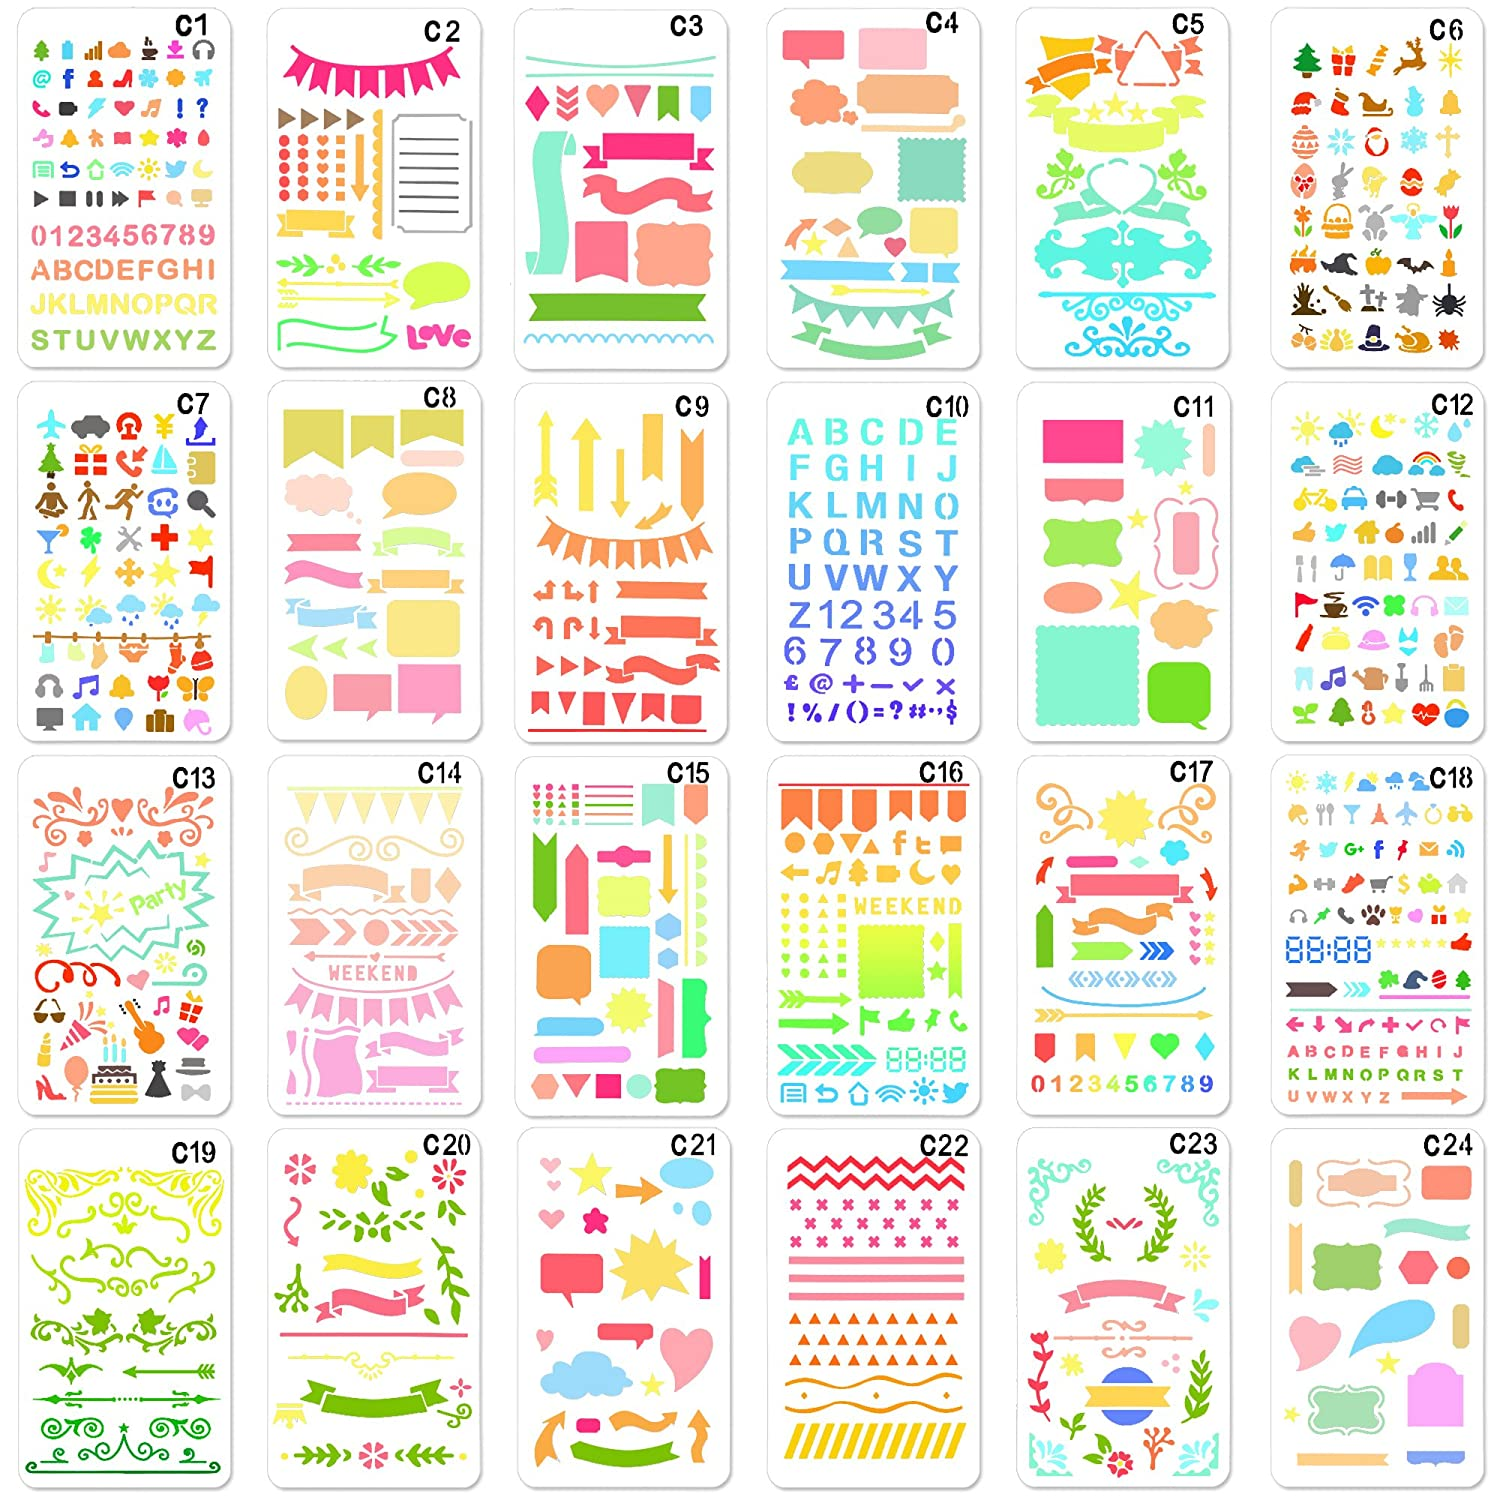 24 Pieces,Over 1200 New Different Patterns of Journal Stencil Painting Stencil Letter Stencil Planner Stencil for DIY Craft,Scrapbooking and DIY Craft ONEONEY